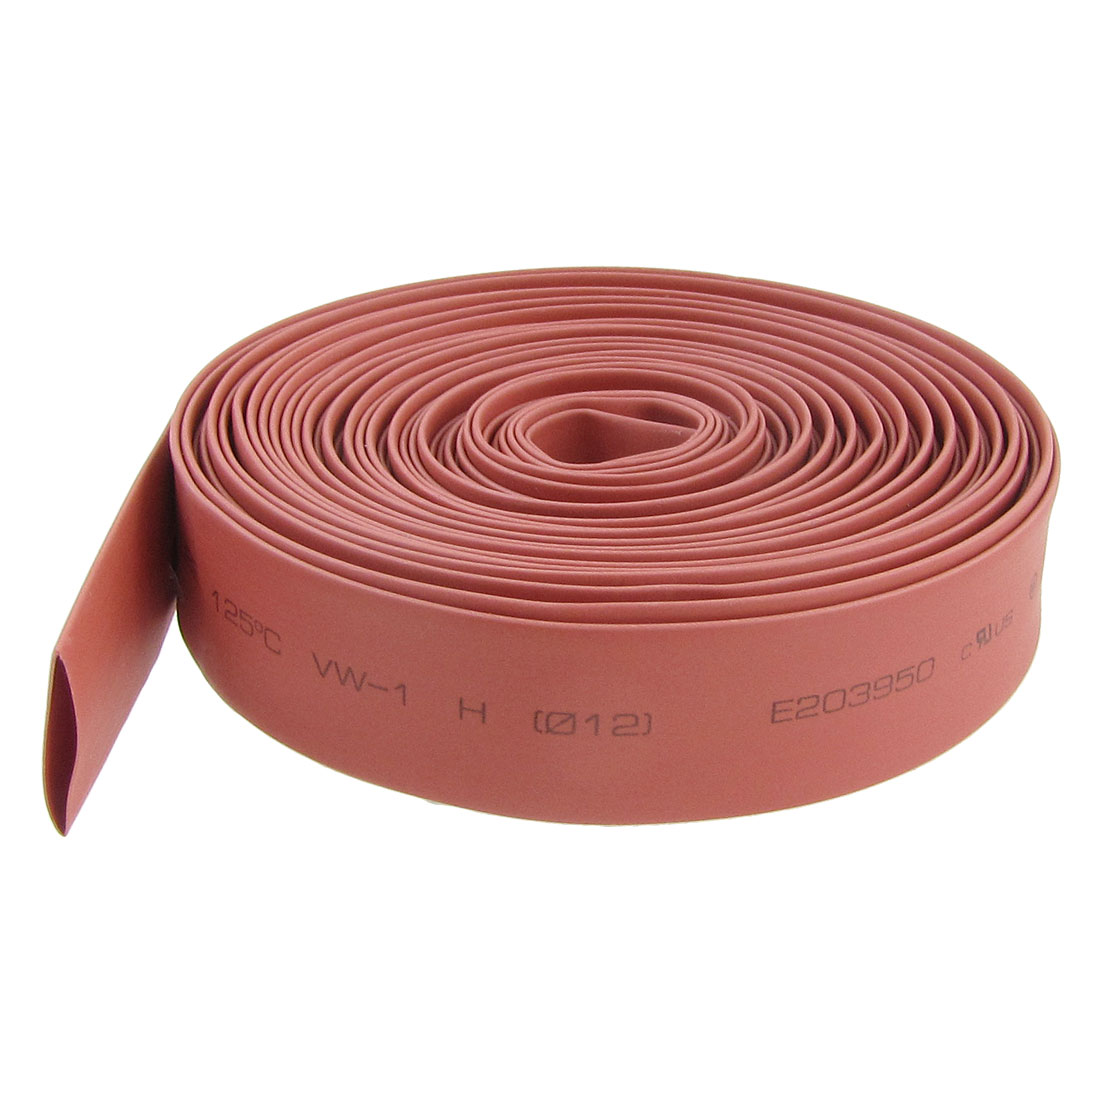 Ratio 2:1 12mm Dia. Red Heat Shrinkable Tube Shrinking Tubing 8M